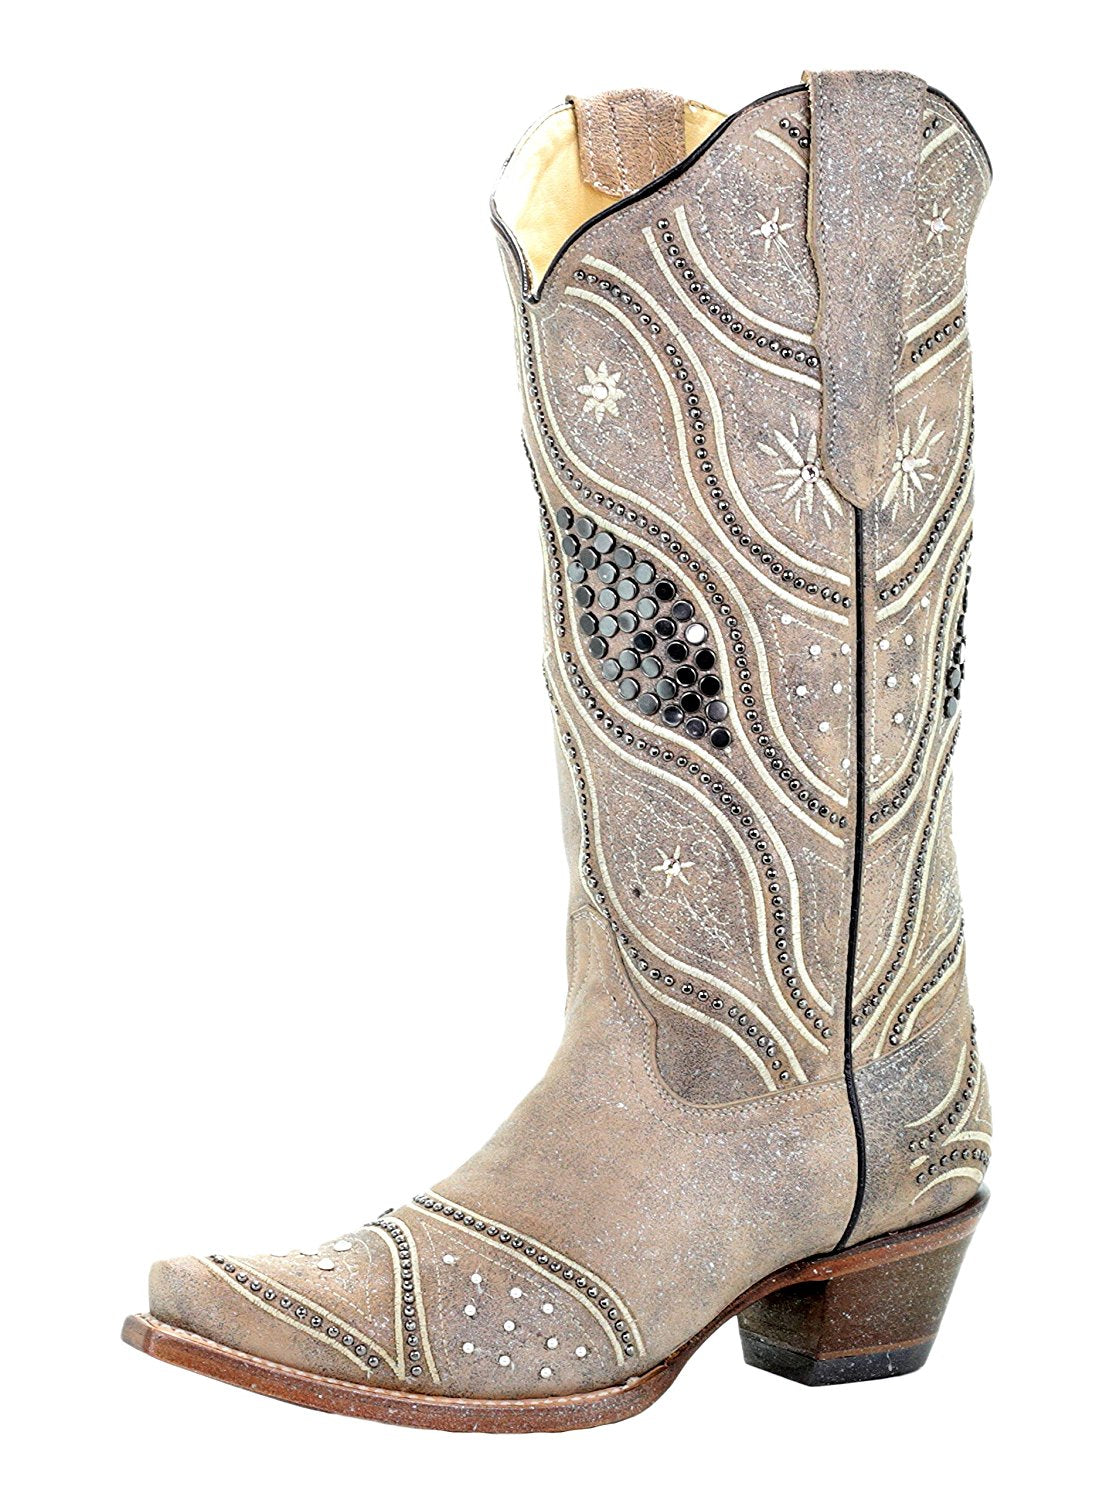 Ladies' Corral Bone Embroidery and Studs Boots